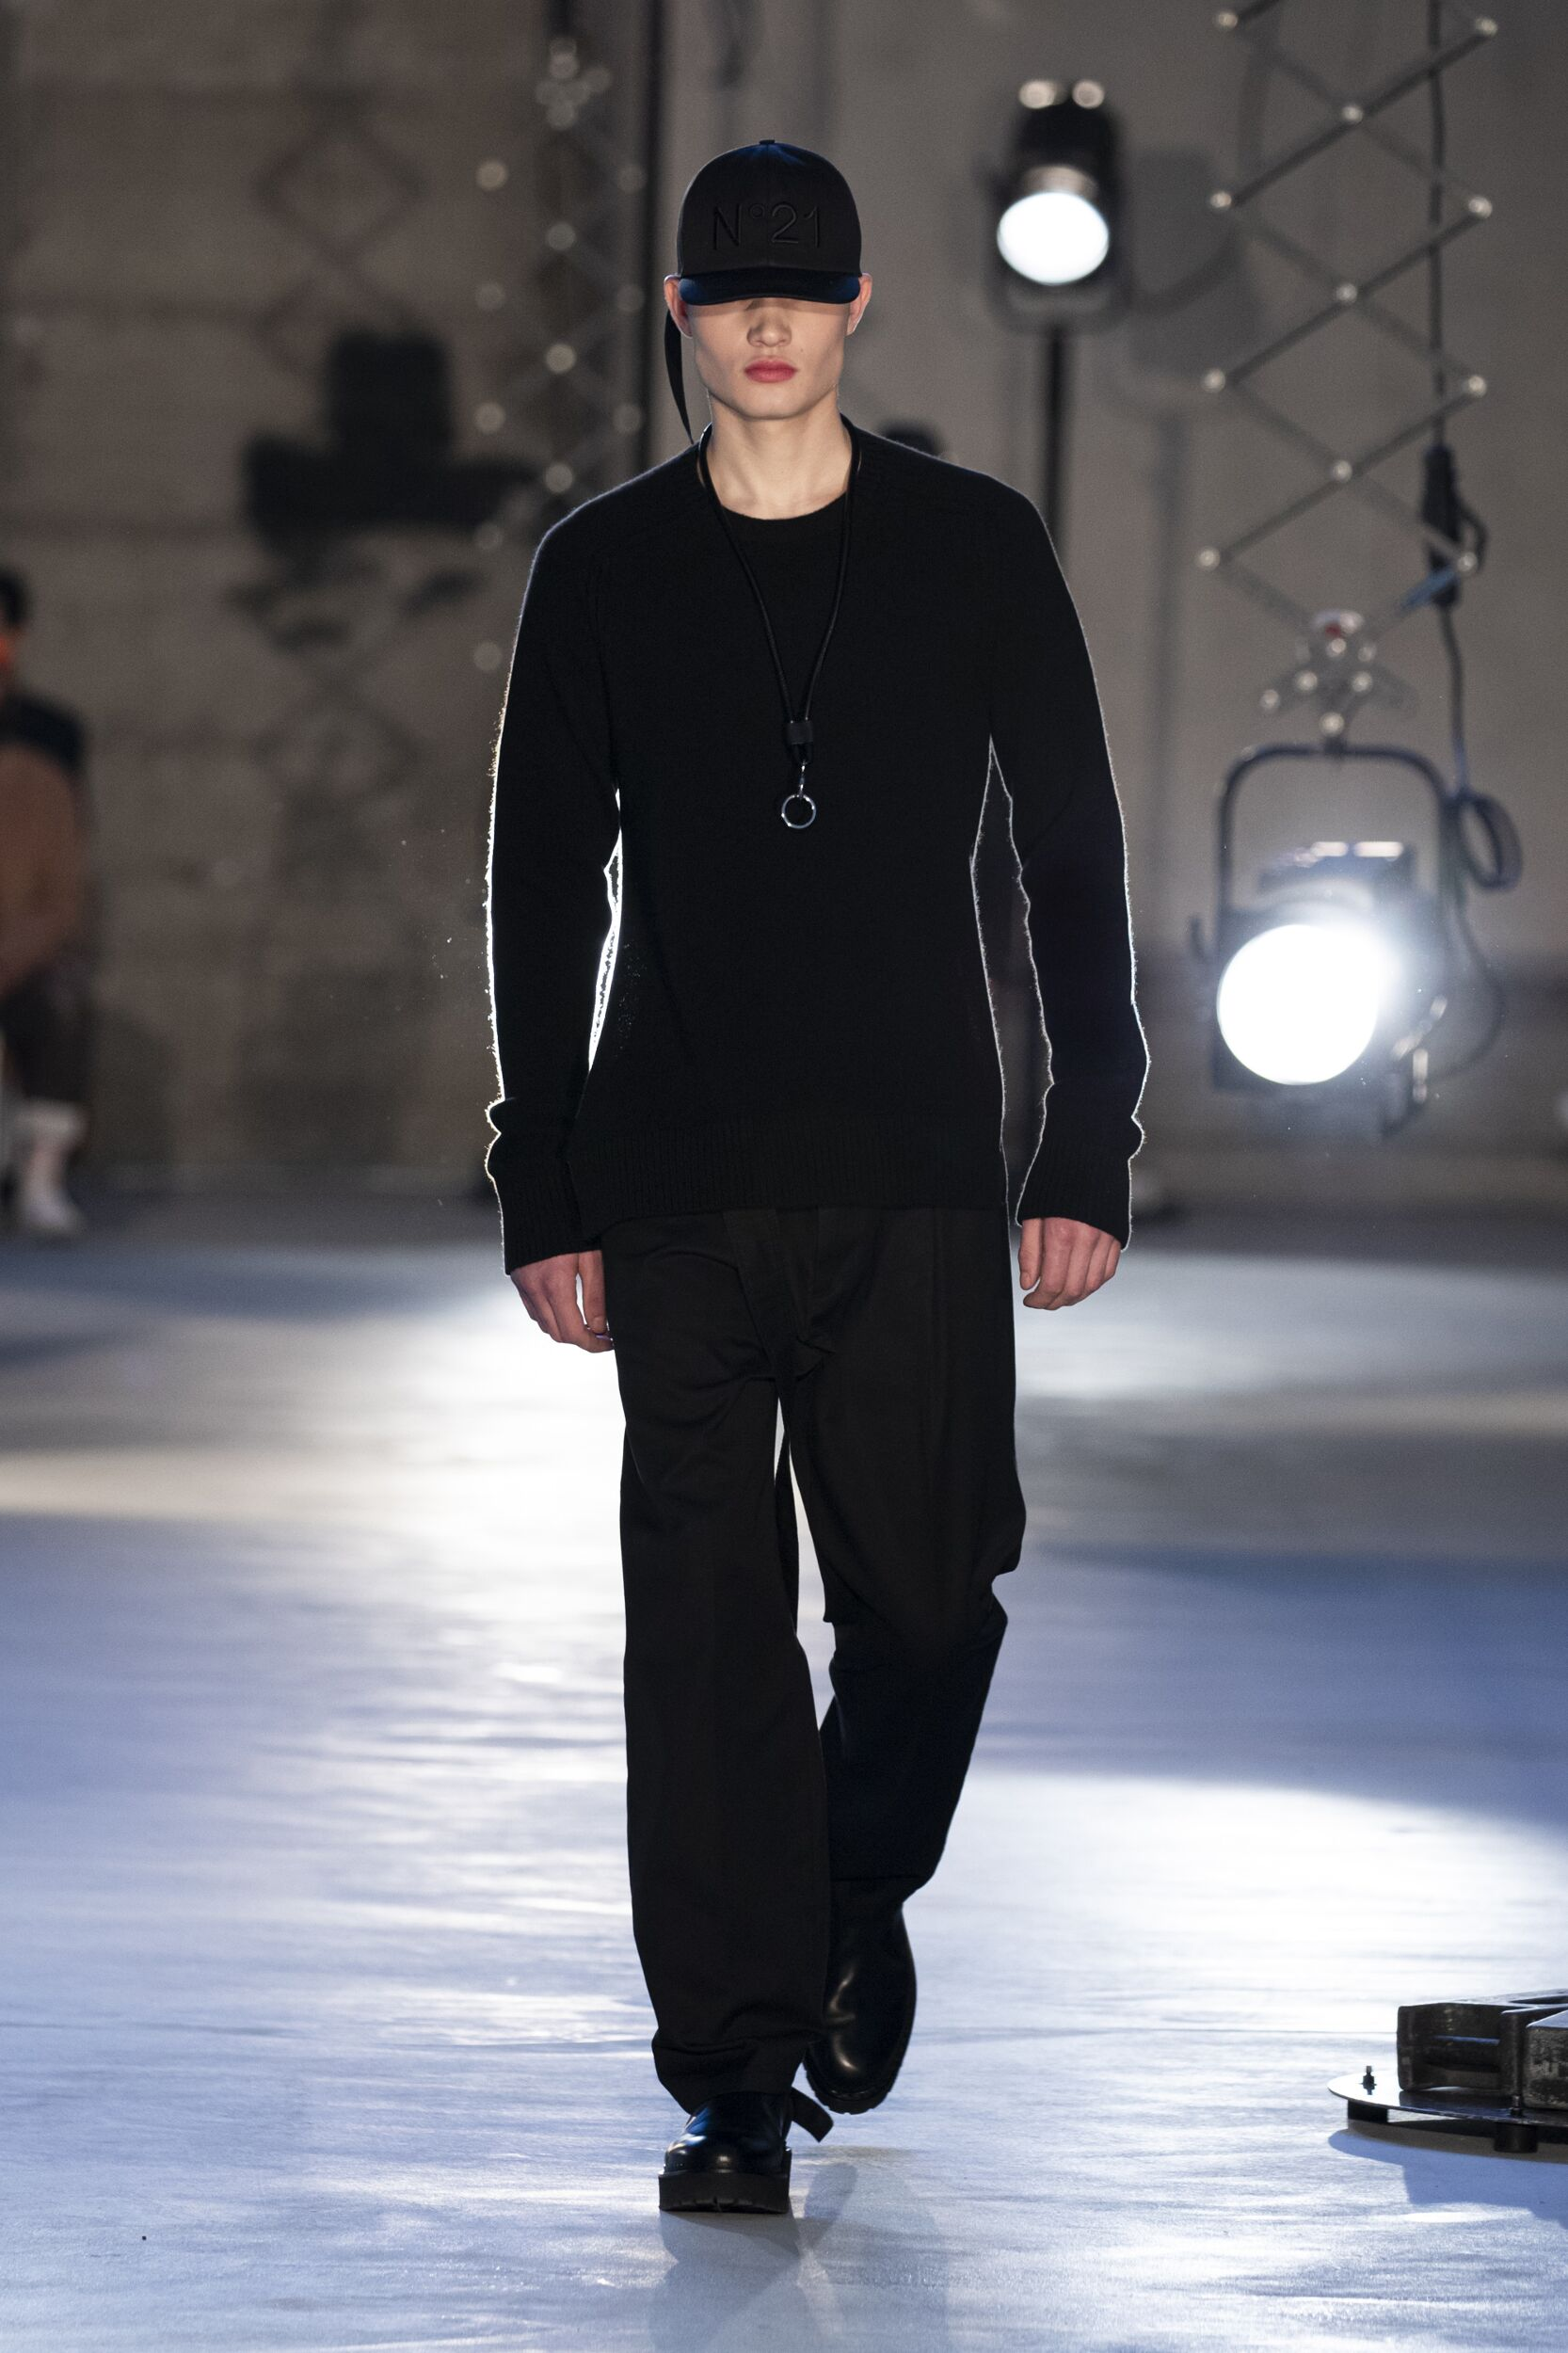 Catwalk N°21 Winter 2020